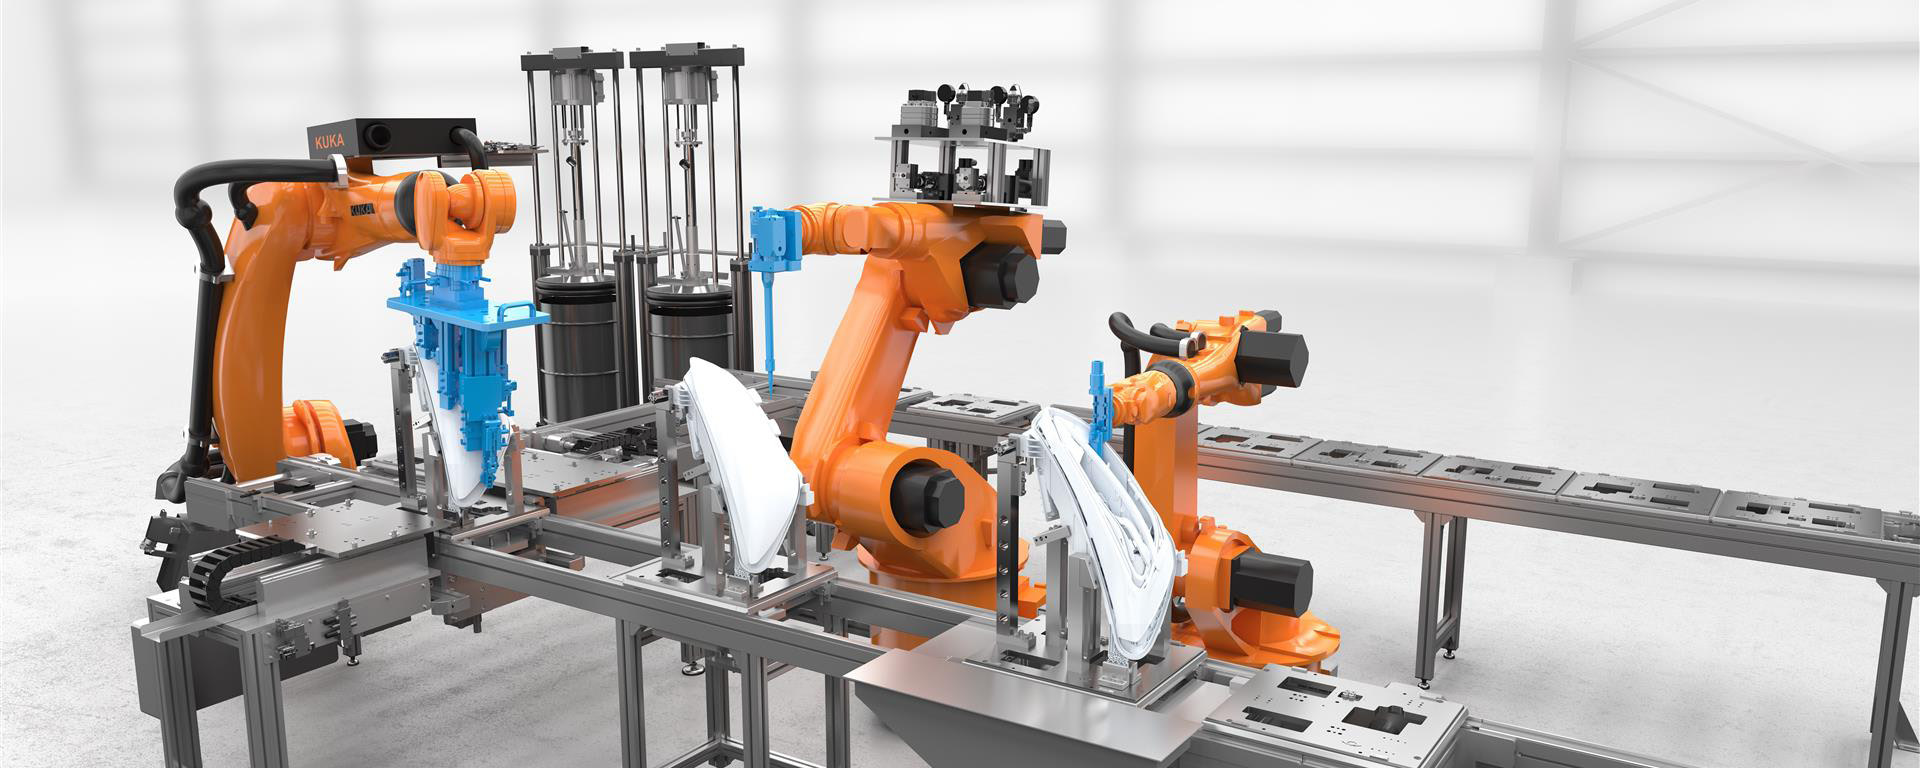 Robotic gluing solutions